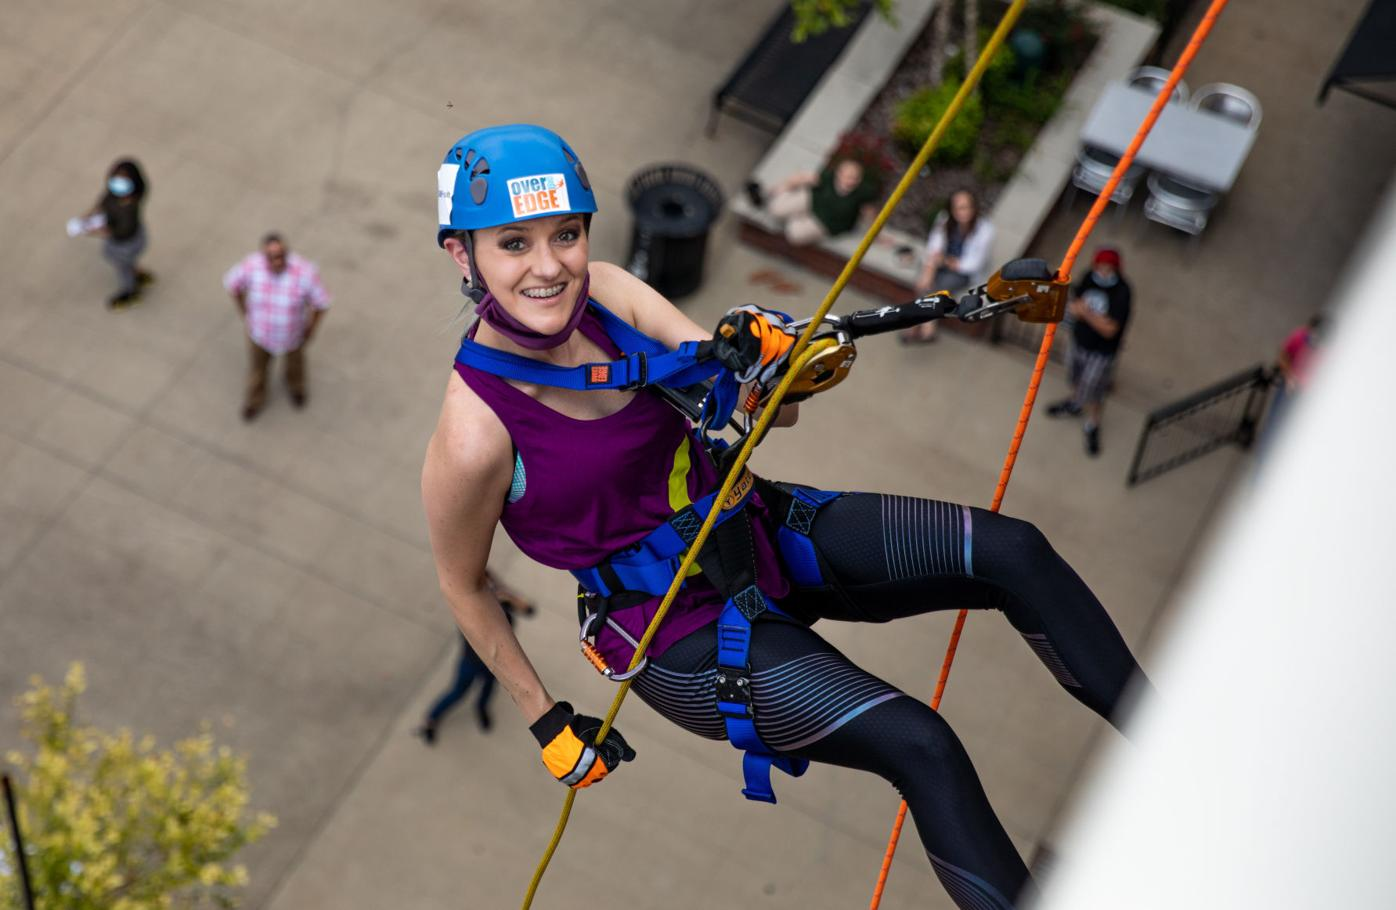 News_Overtheedge091320-2.jpg